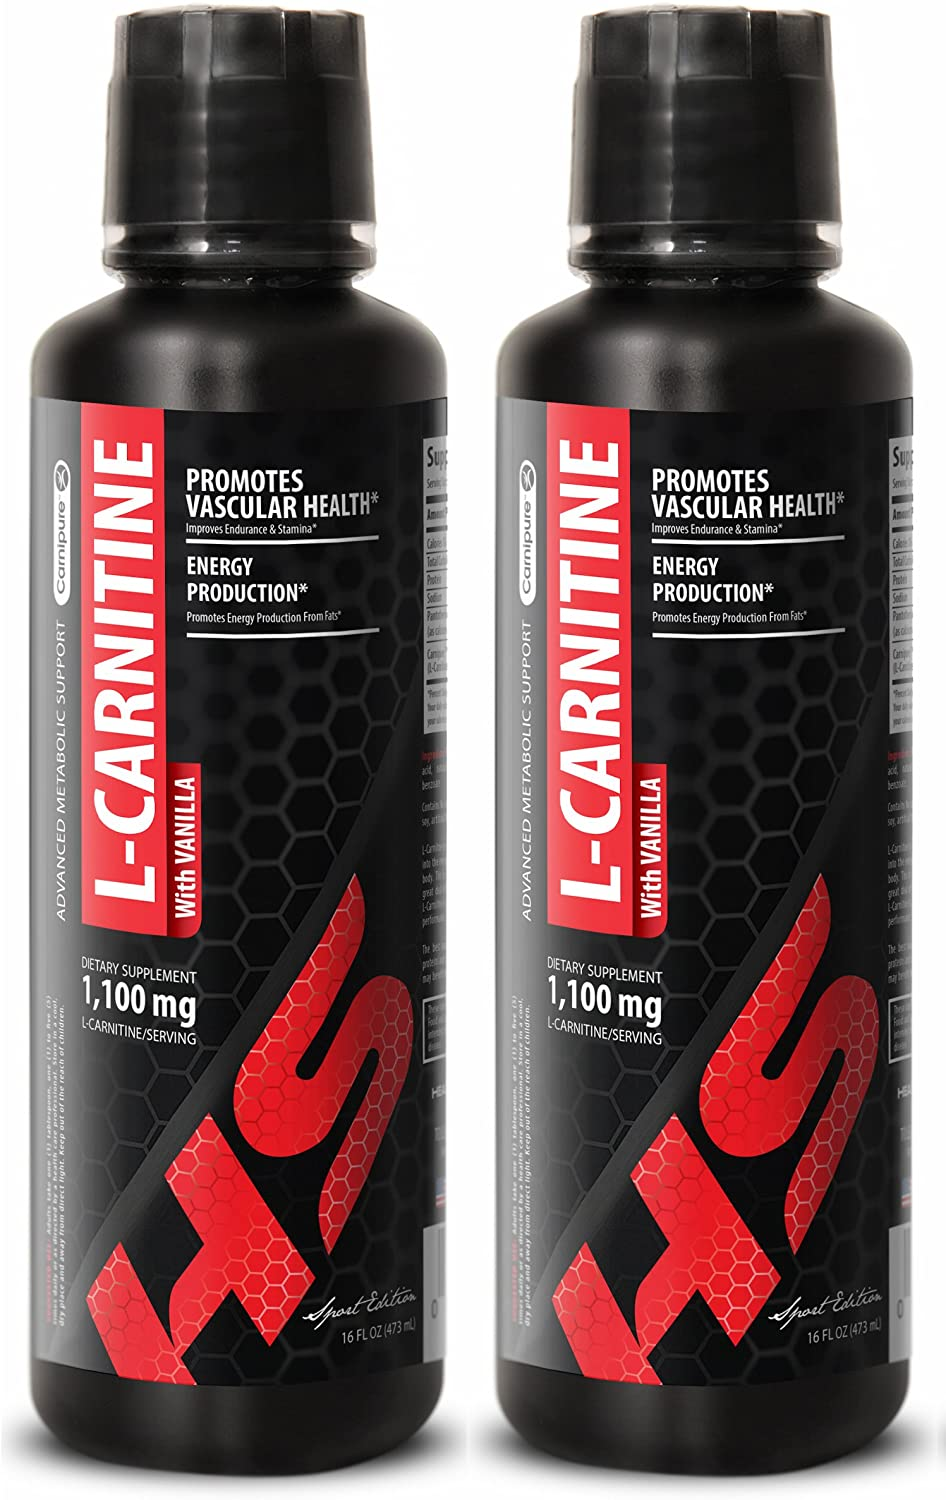 Testosterone Booster Supplement - L-Carnitine 1,100MG - l carnitine l Tartrate - 2 Bottles (32 FL OZ)